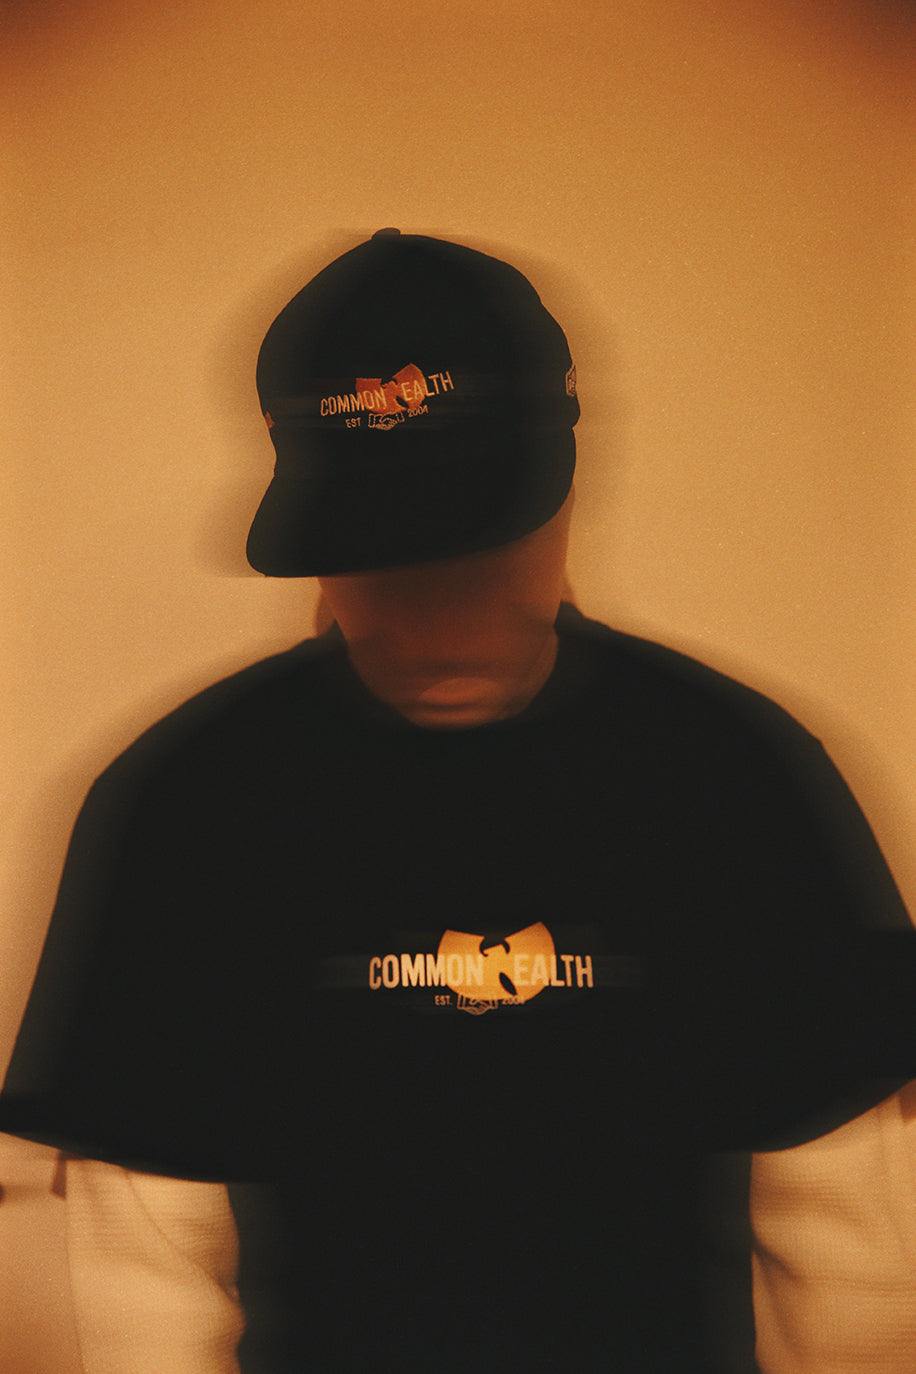 Commonwealth x Wu-Tang photoshoot hat and tee